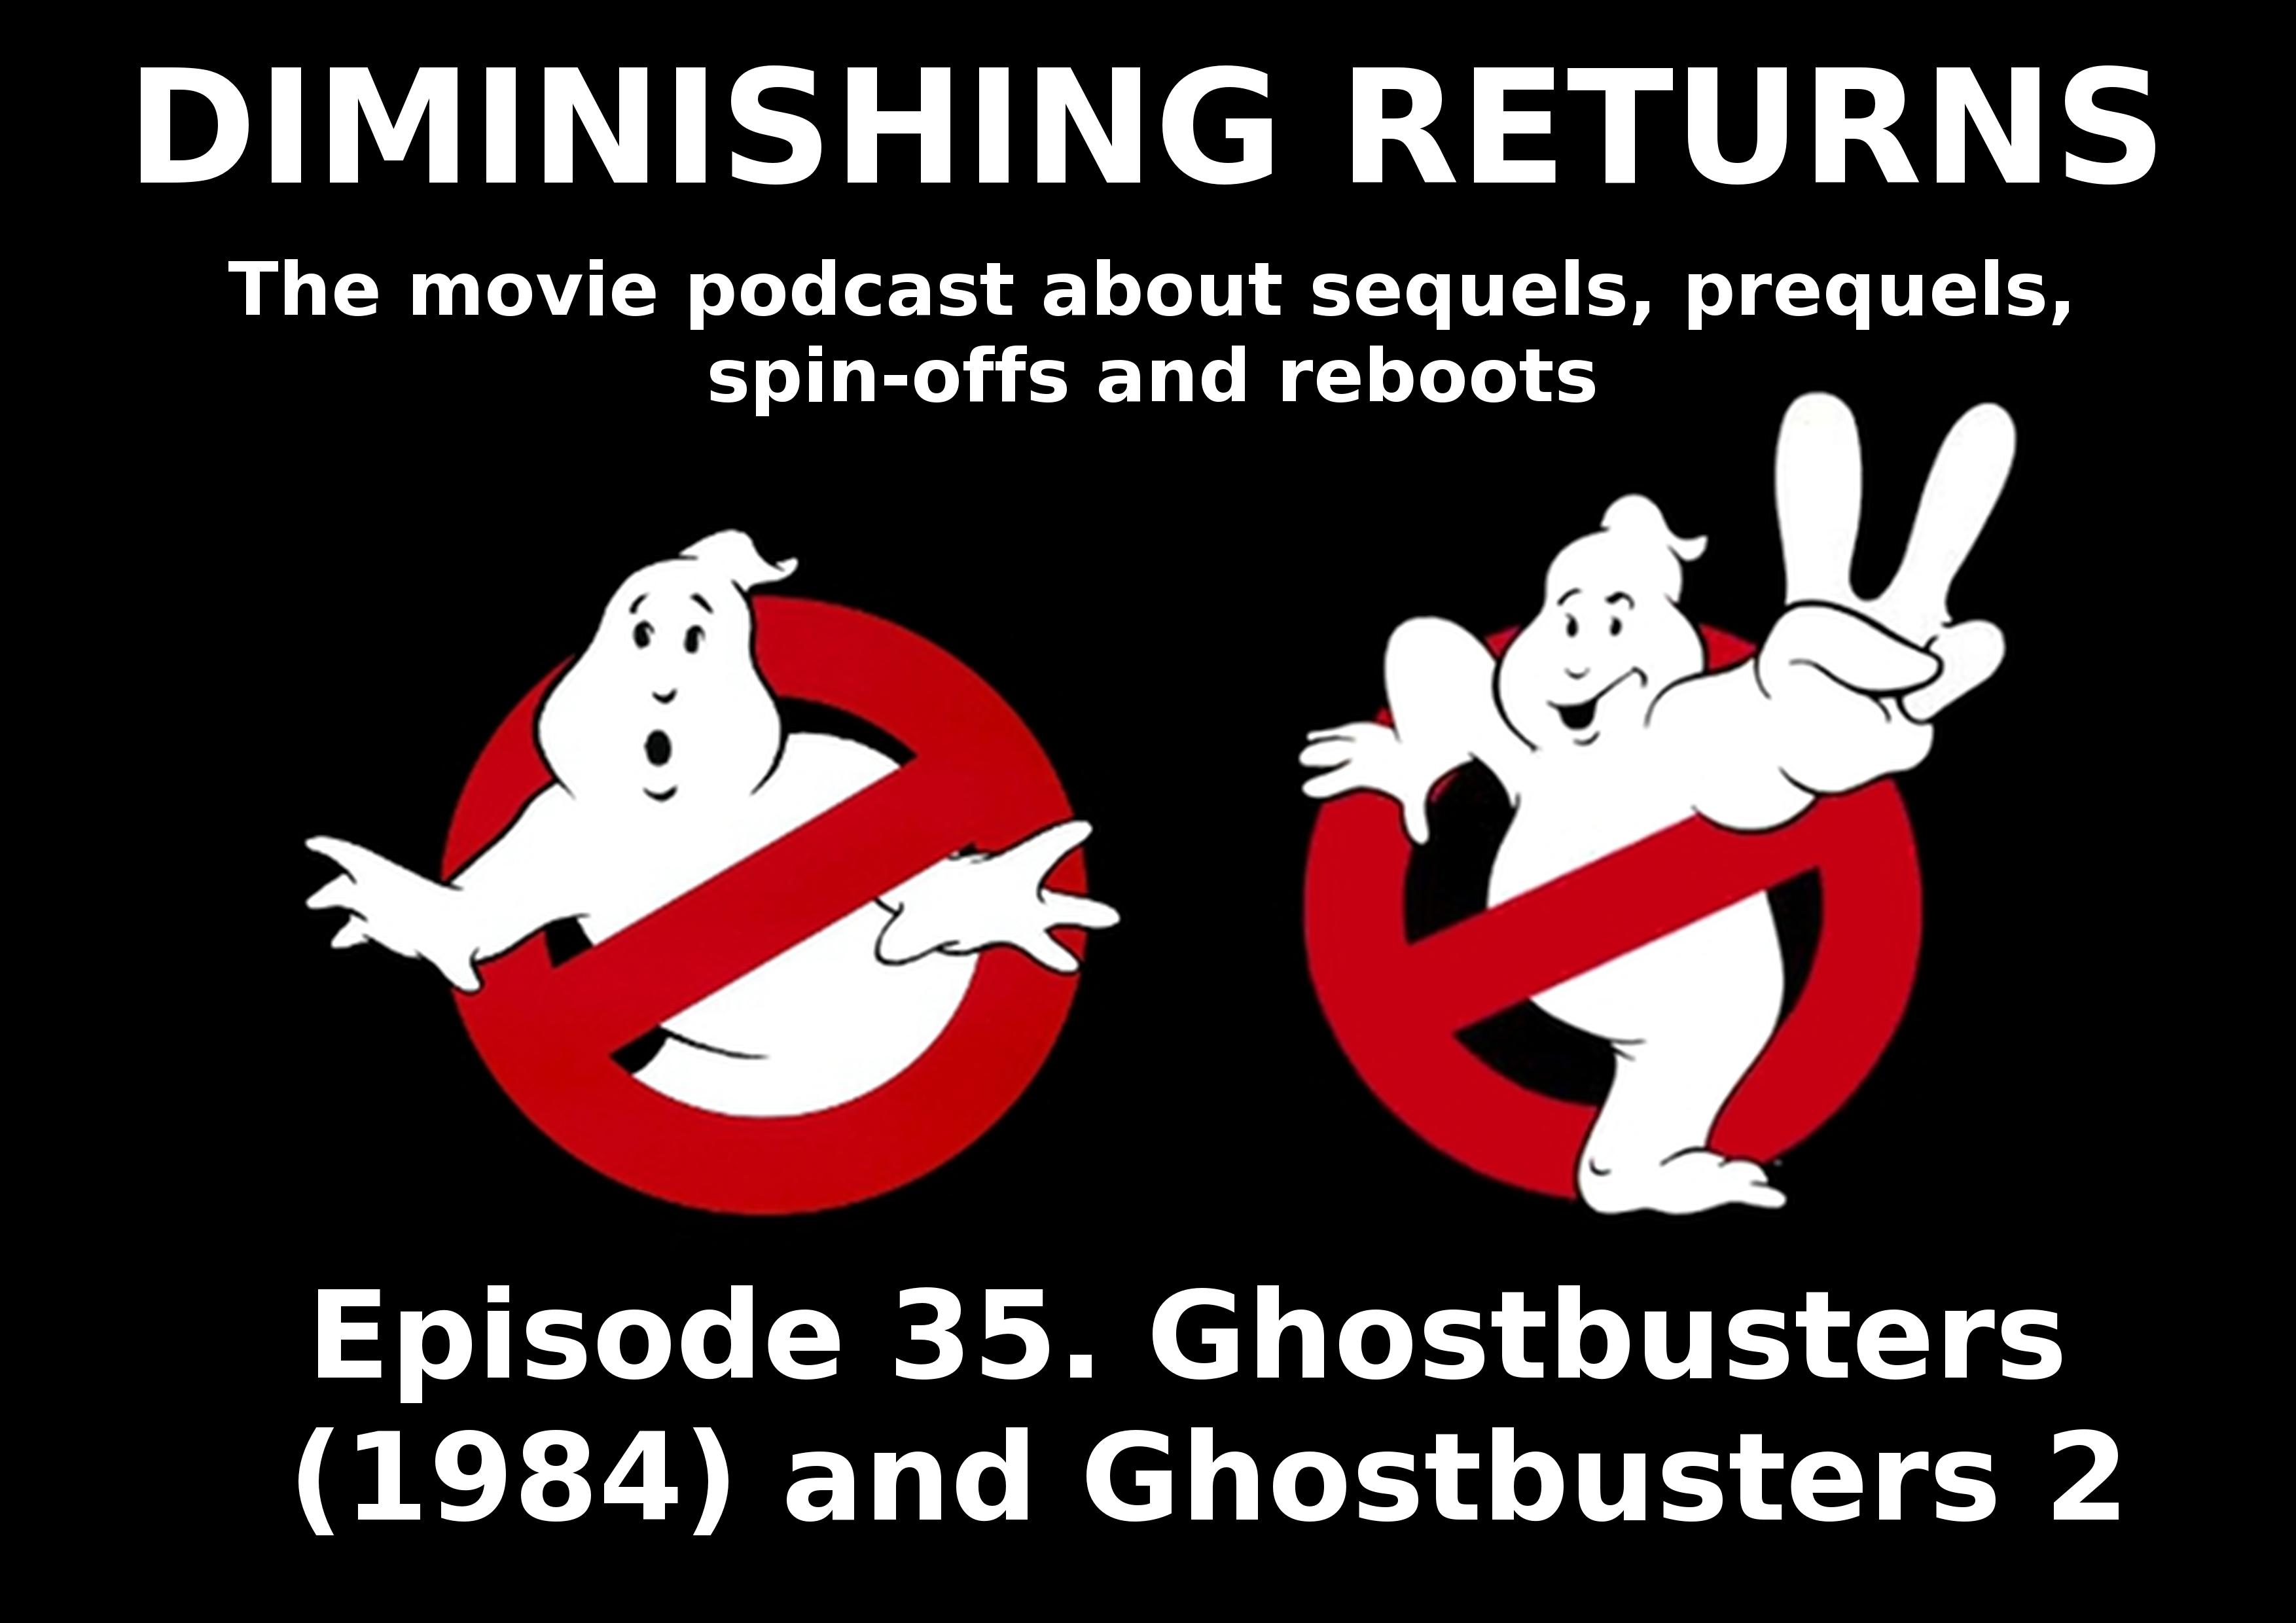 Diminishing Returns ep 35 Ghostbusters (1984) and Ghostbusters 2 (1989)